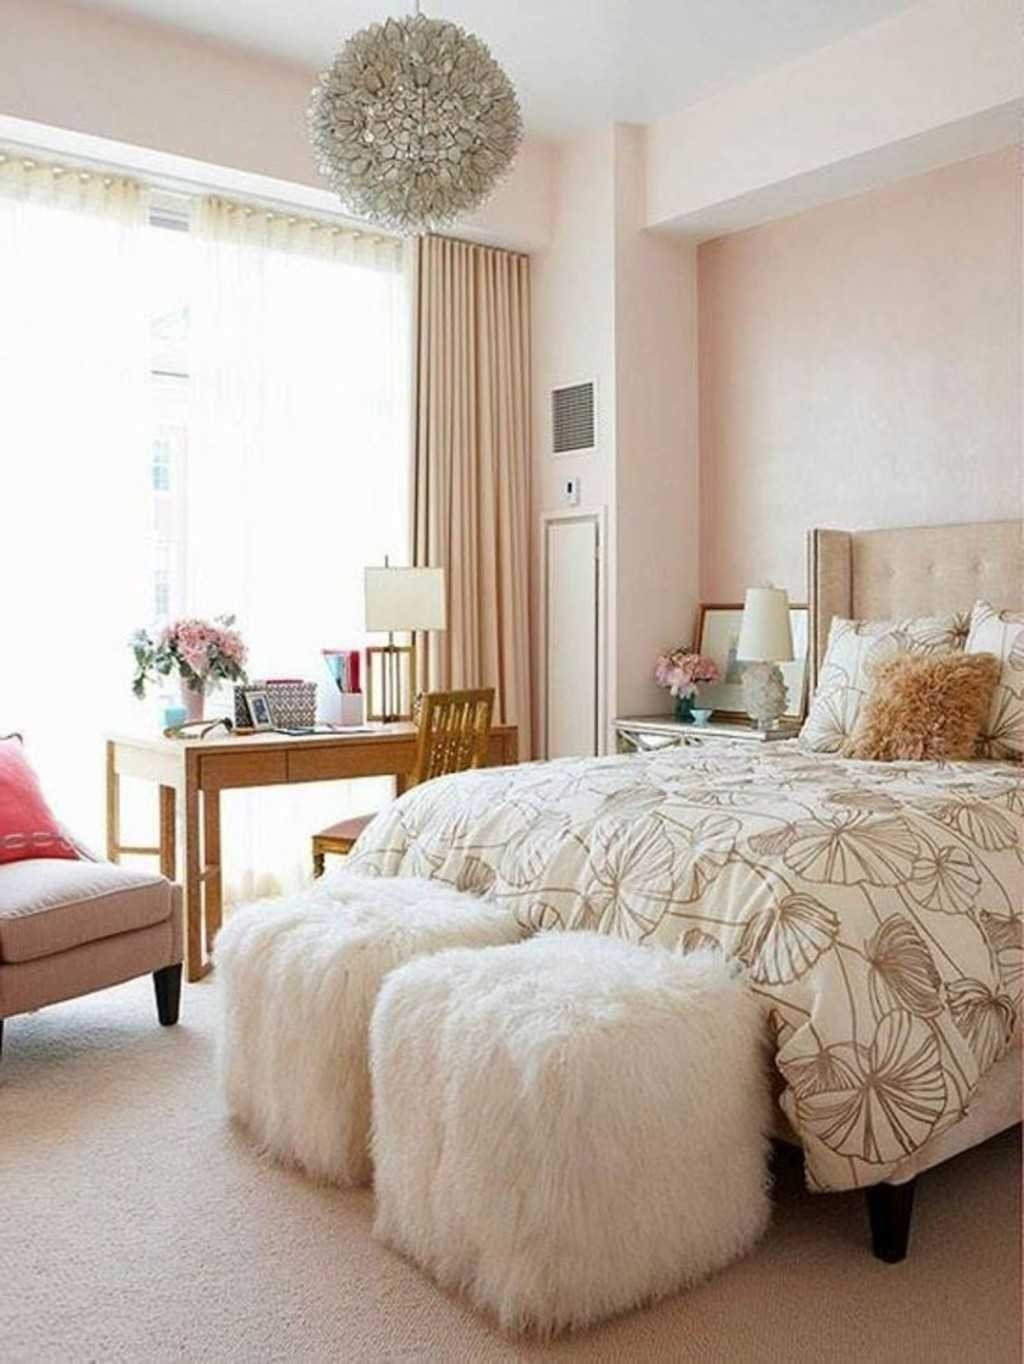 10 Trendy Bedroom Ideas For Young Women fabulous small bedroom ideas for young women collection including 2021